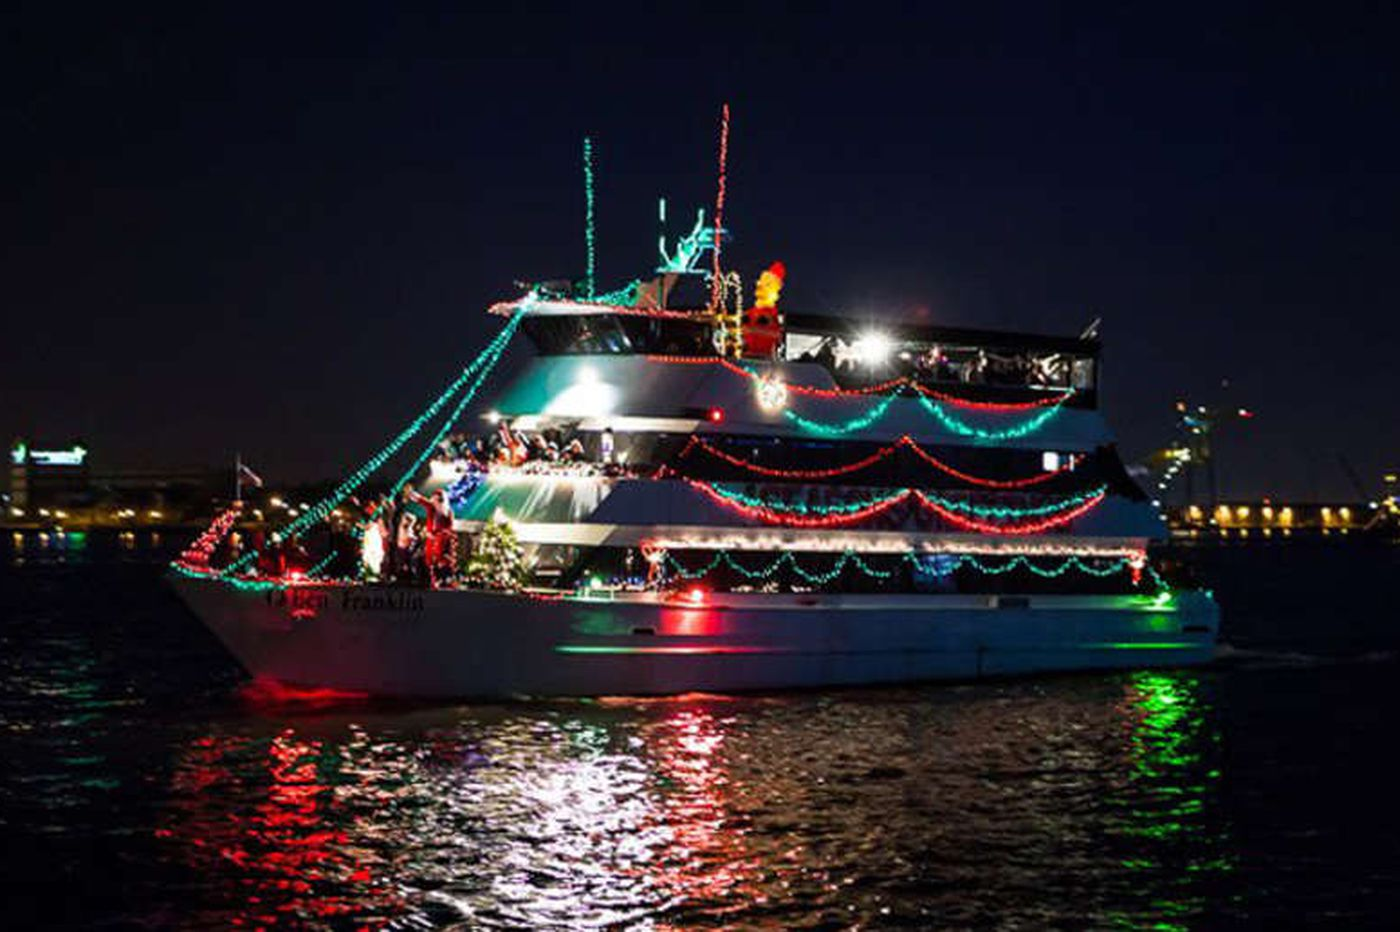 At Seaport Museum Christmas is bright with boats in lights